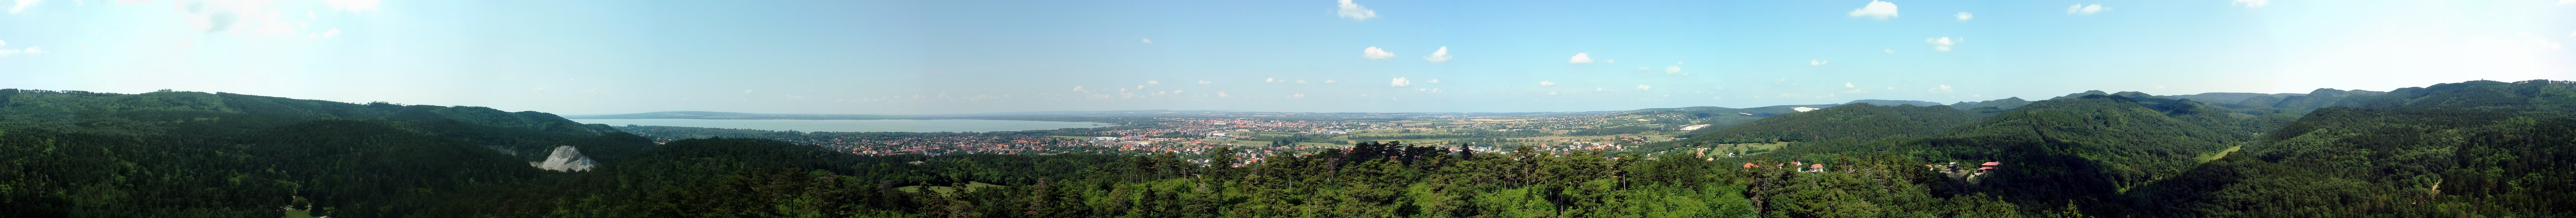 360-degree panorama from the Festetics lookout tower to Keszthely and to the Balaton Lake